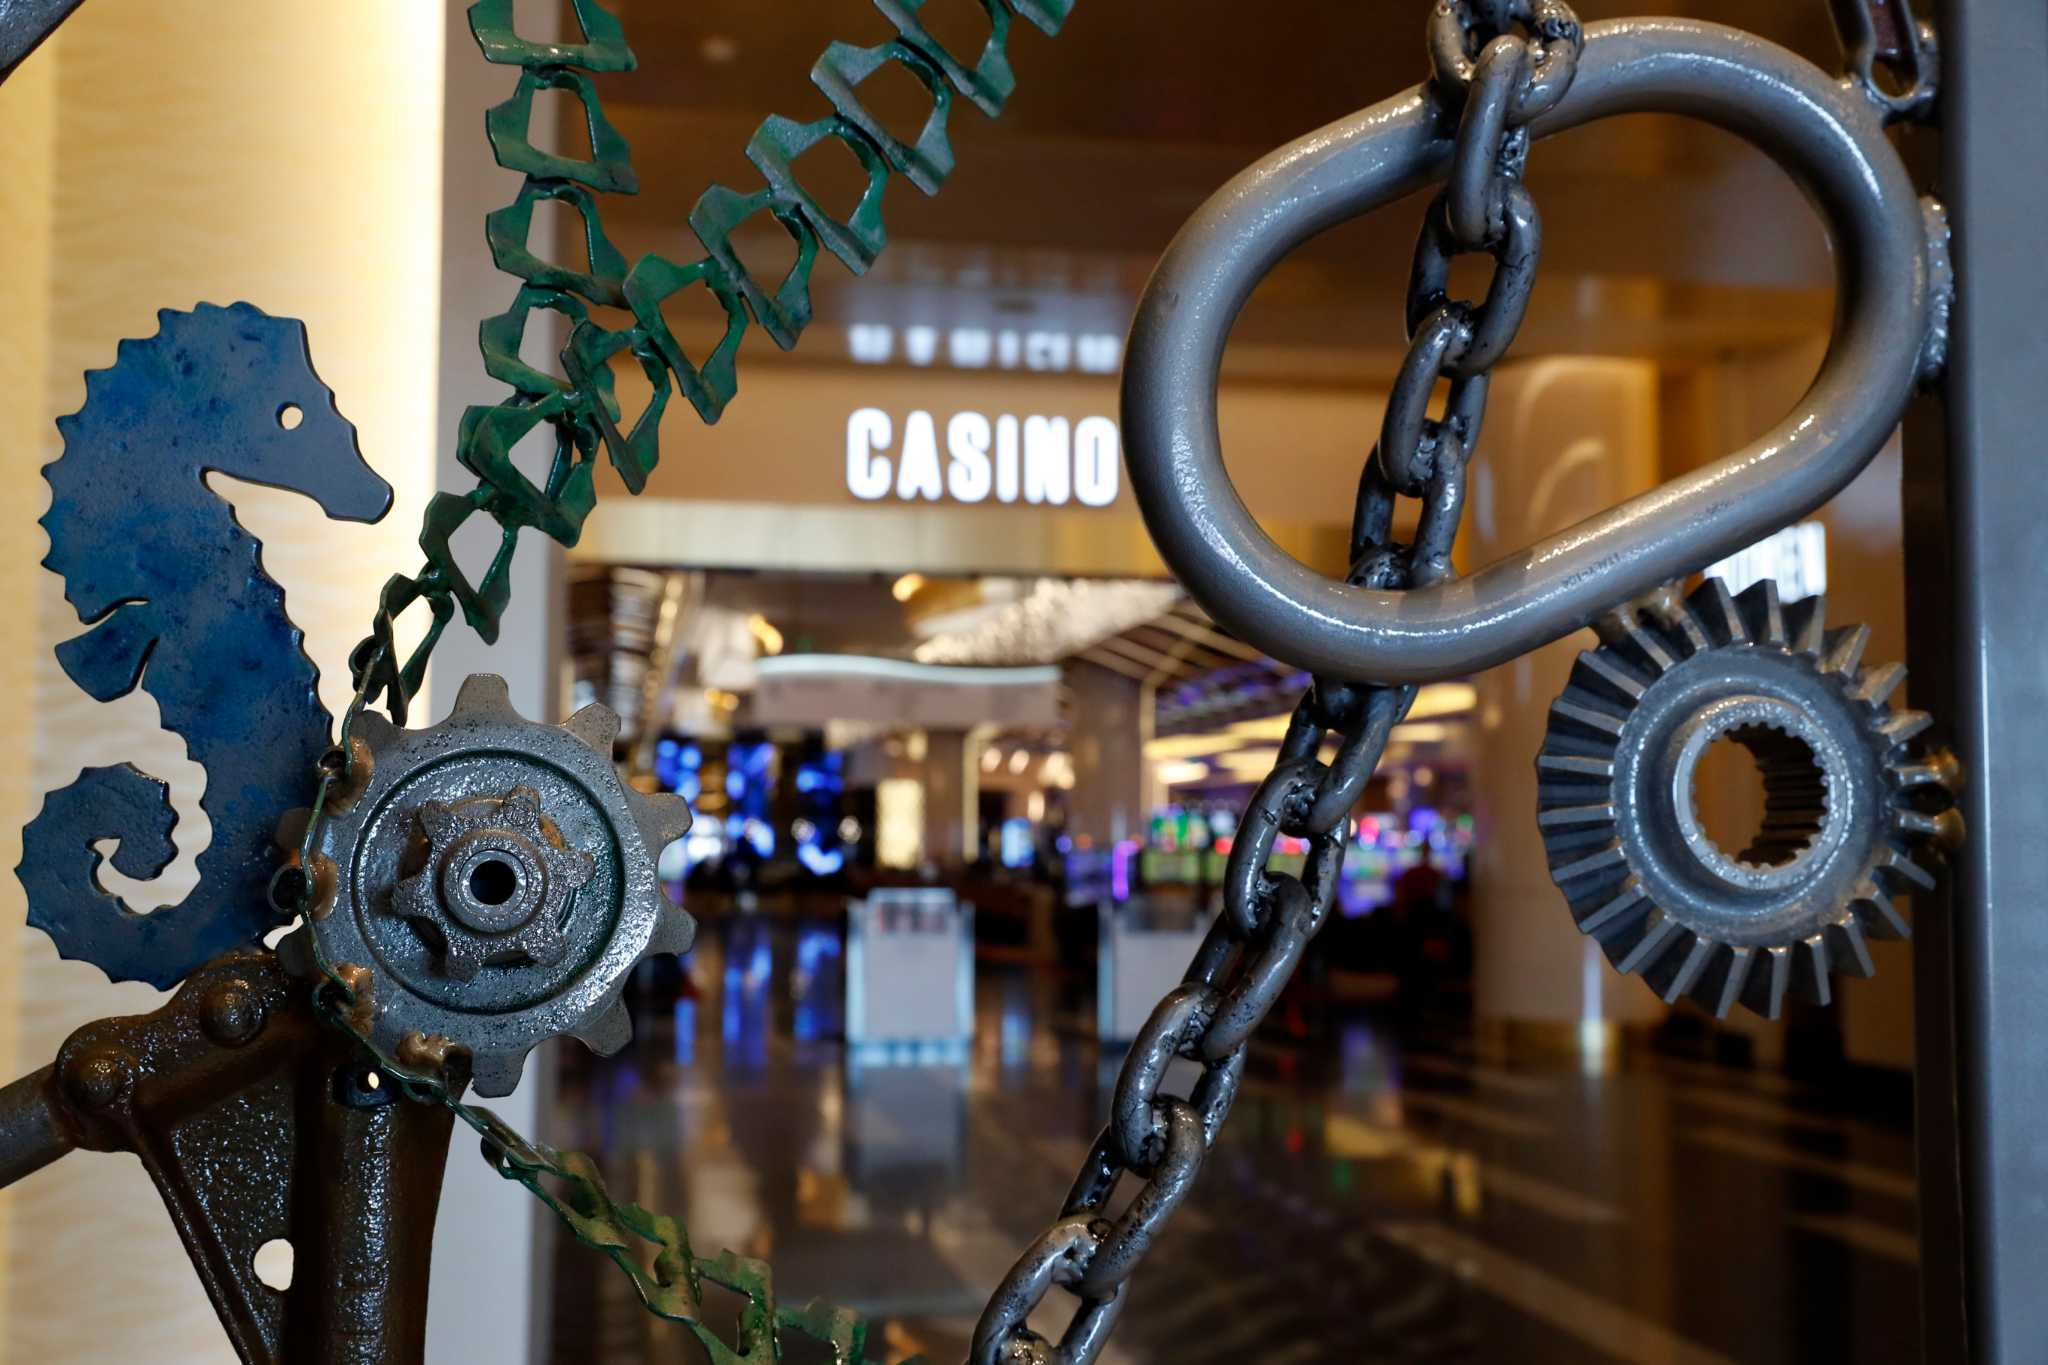 Bob dylan casino lincoln casino instant coupon